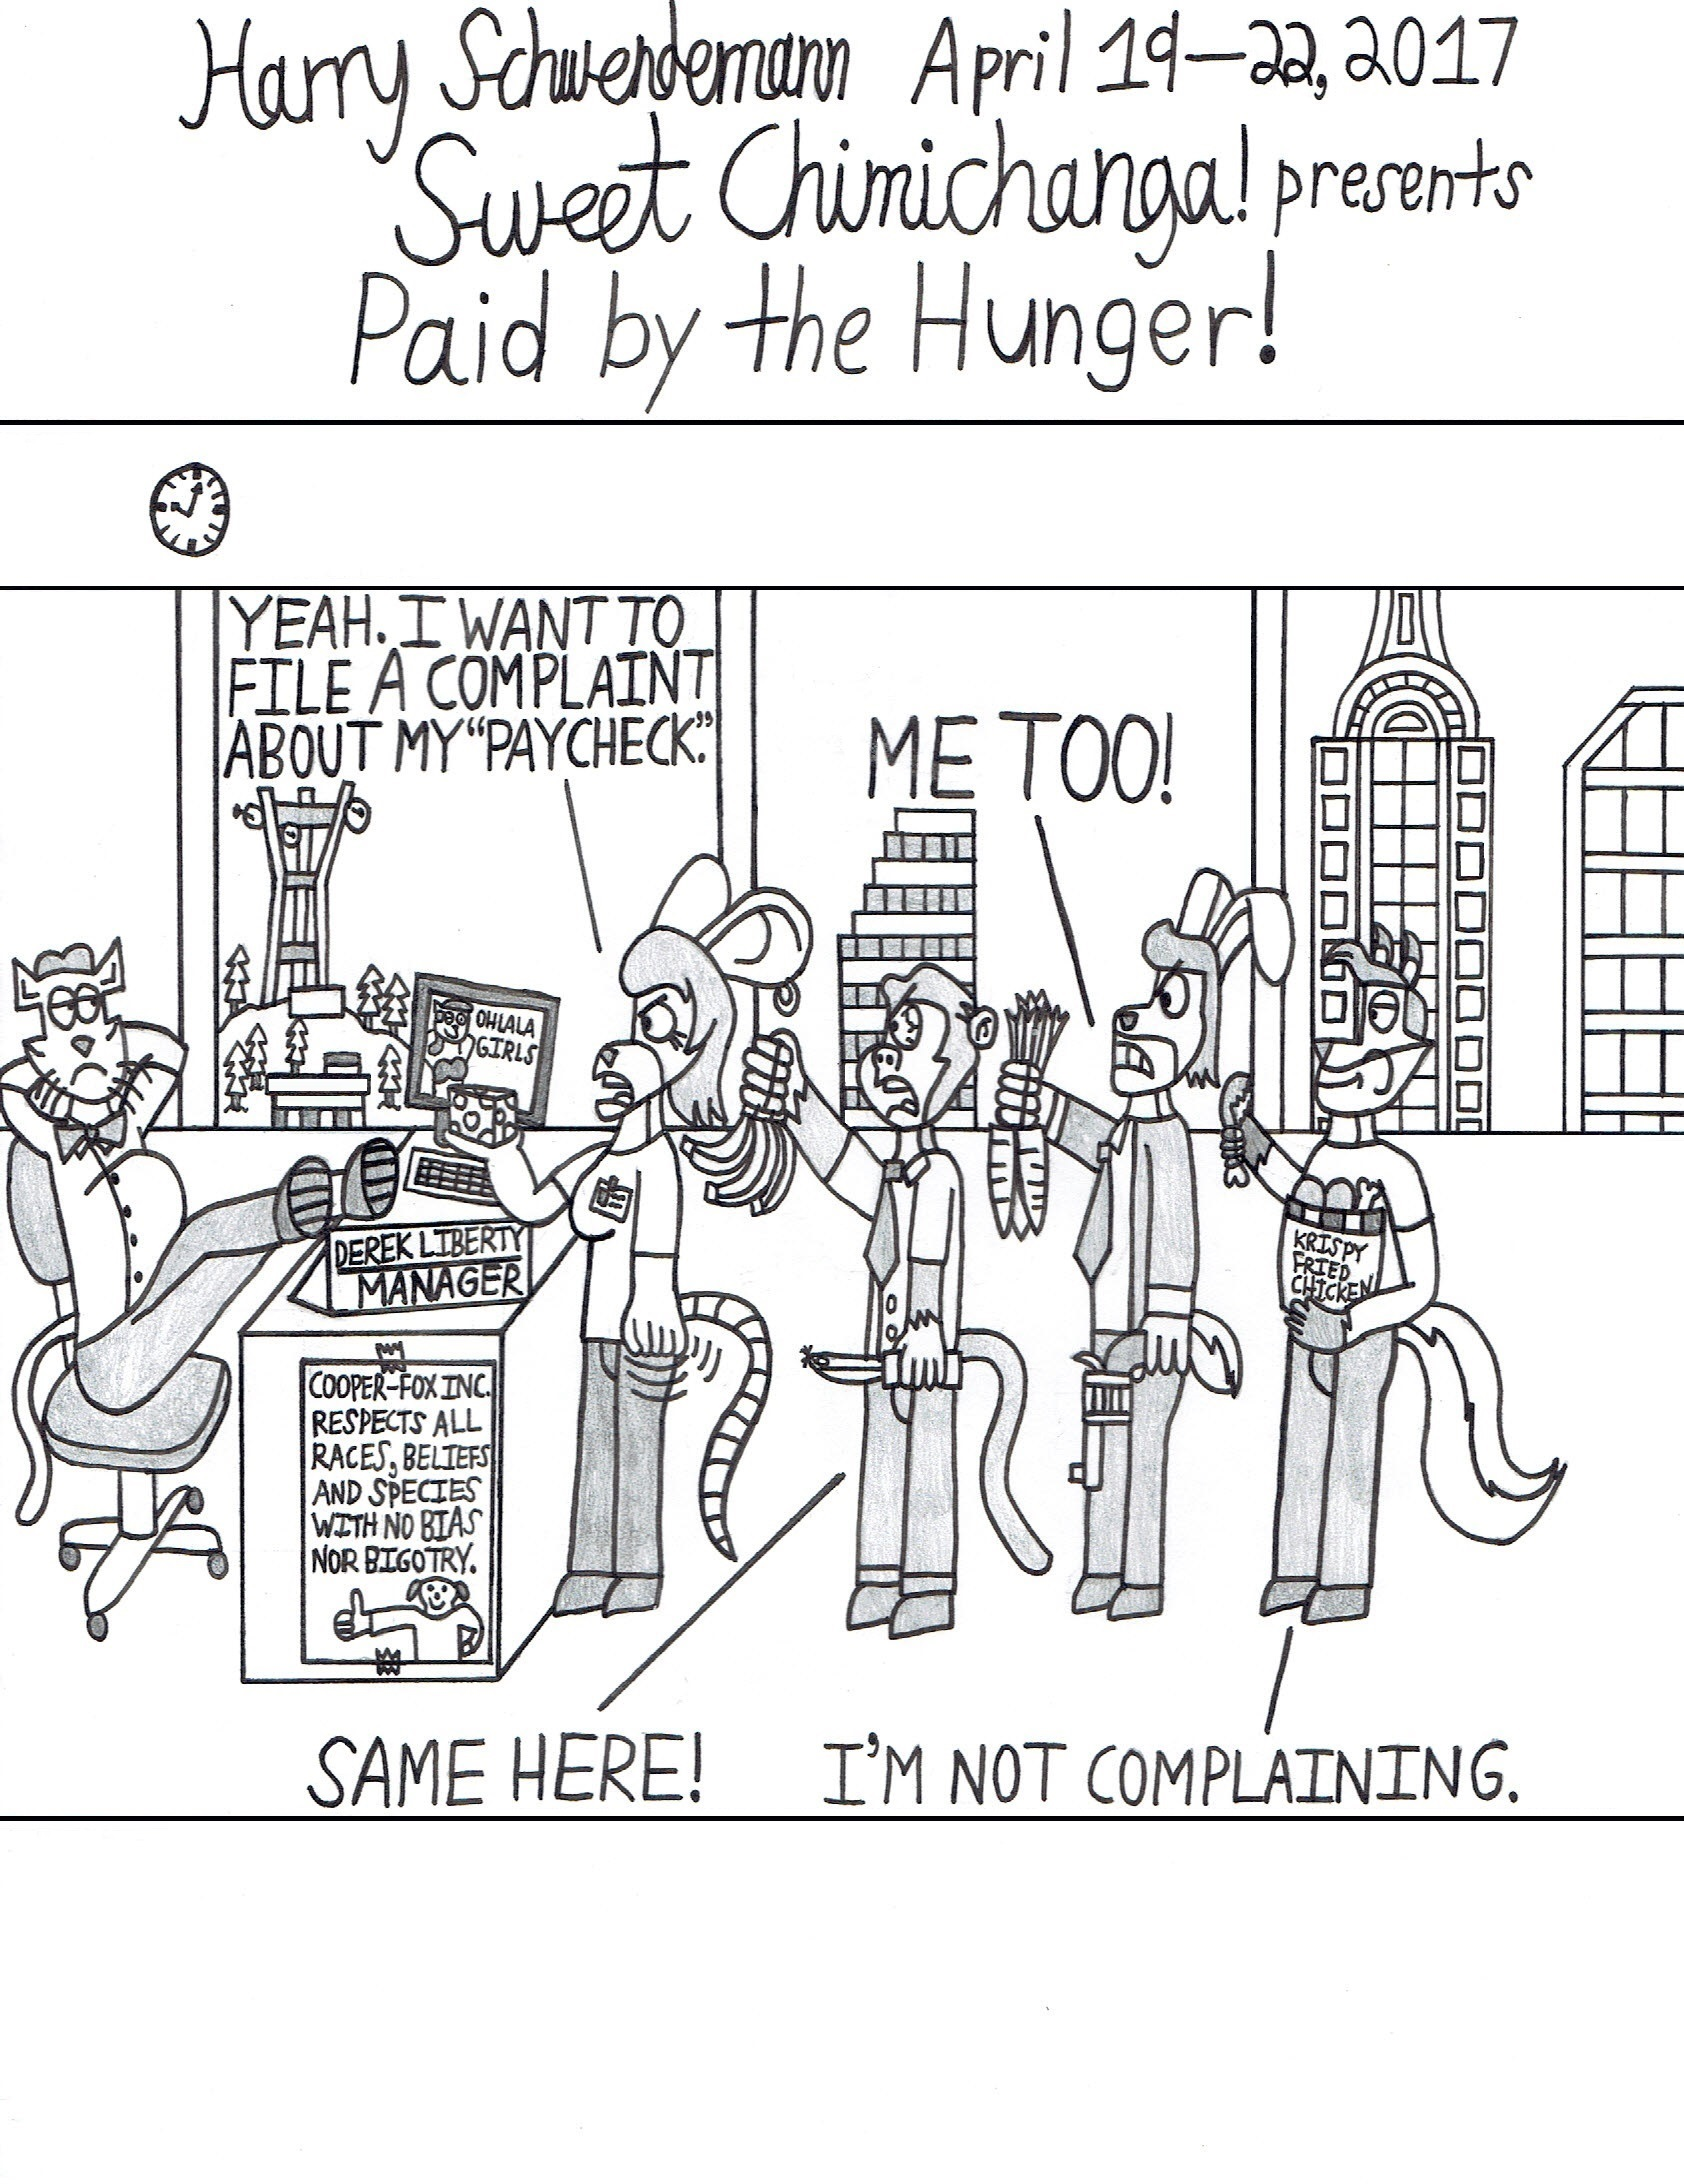 Paid by the Hunger!